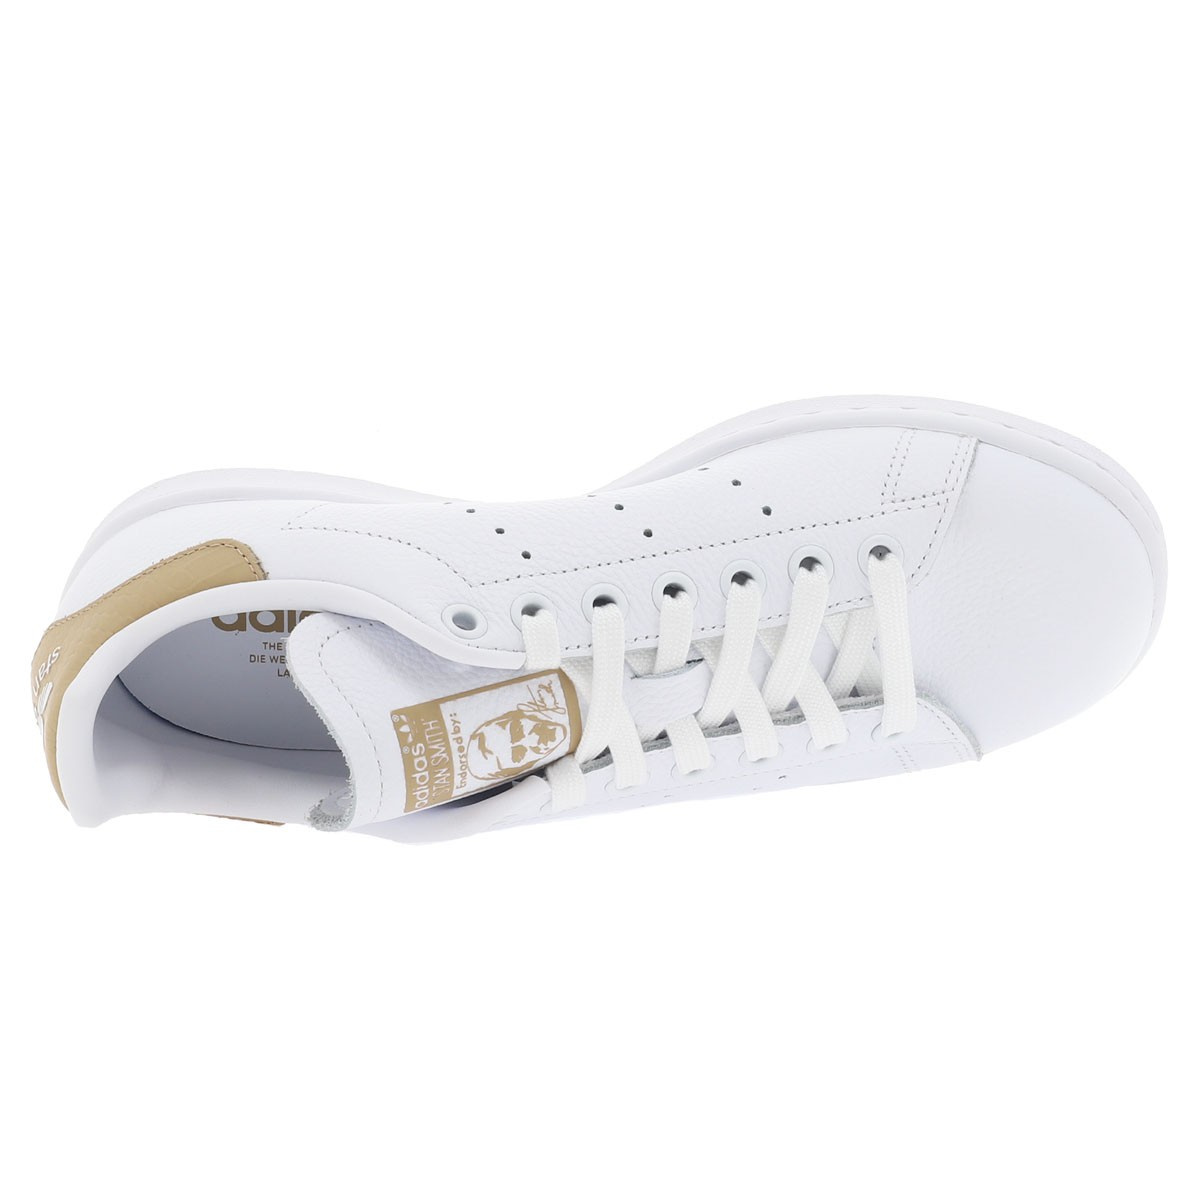 a5fed6c29130 Baskets Stan Smith homme blanc Adidas- CCV Mode